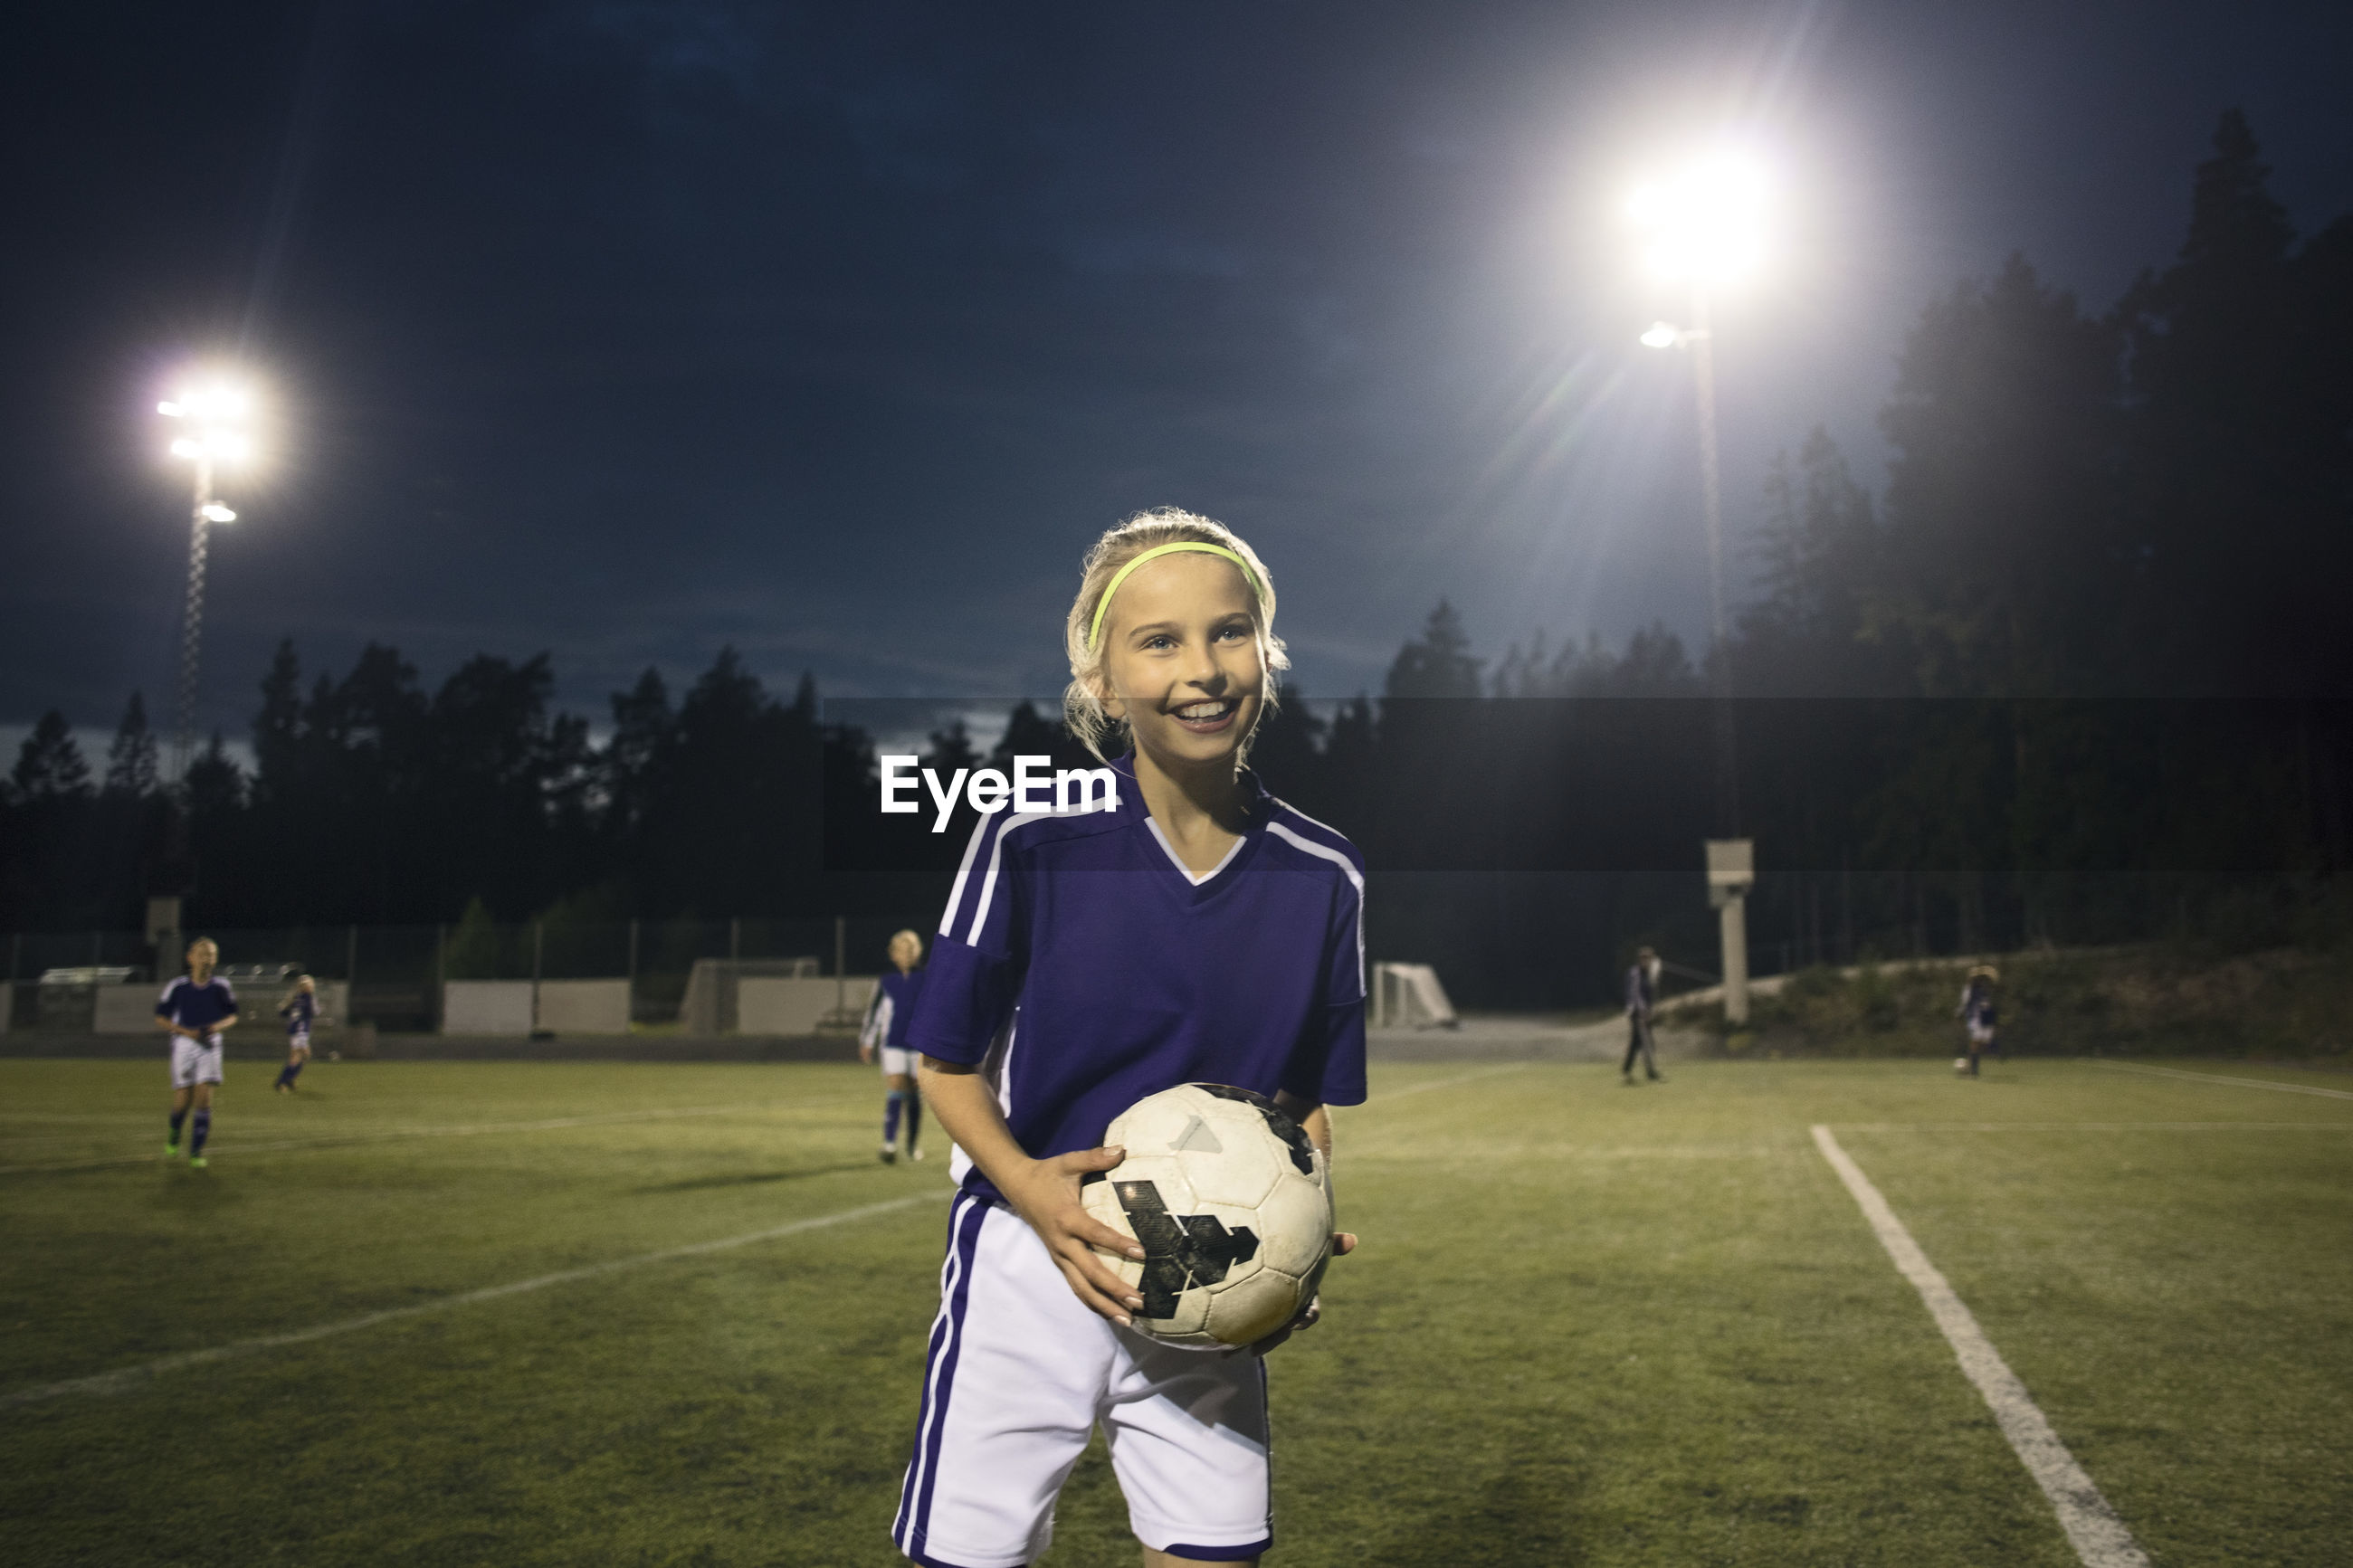 PORTRAIT OF SMILING YOUNG WOMAN STANDING ON SOCCER FIELD